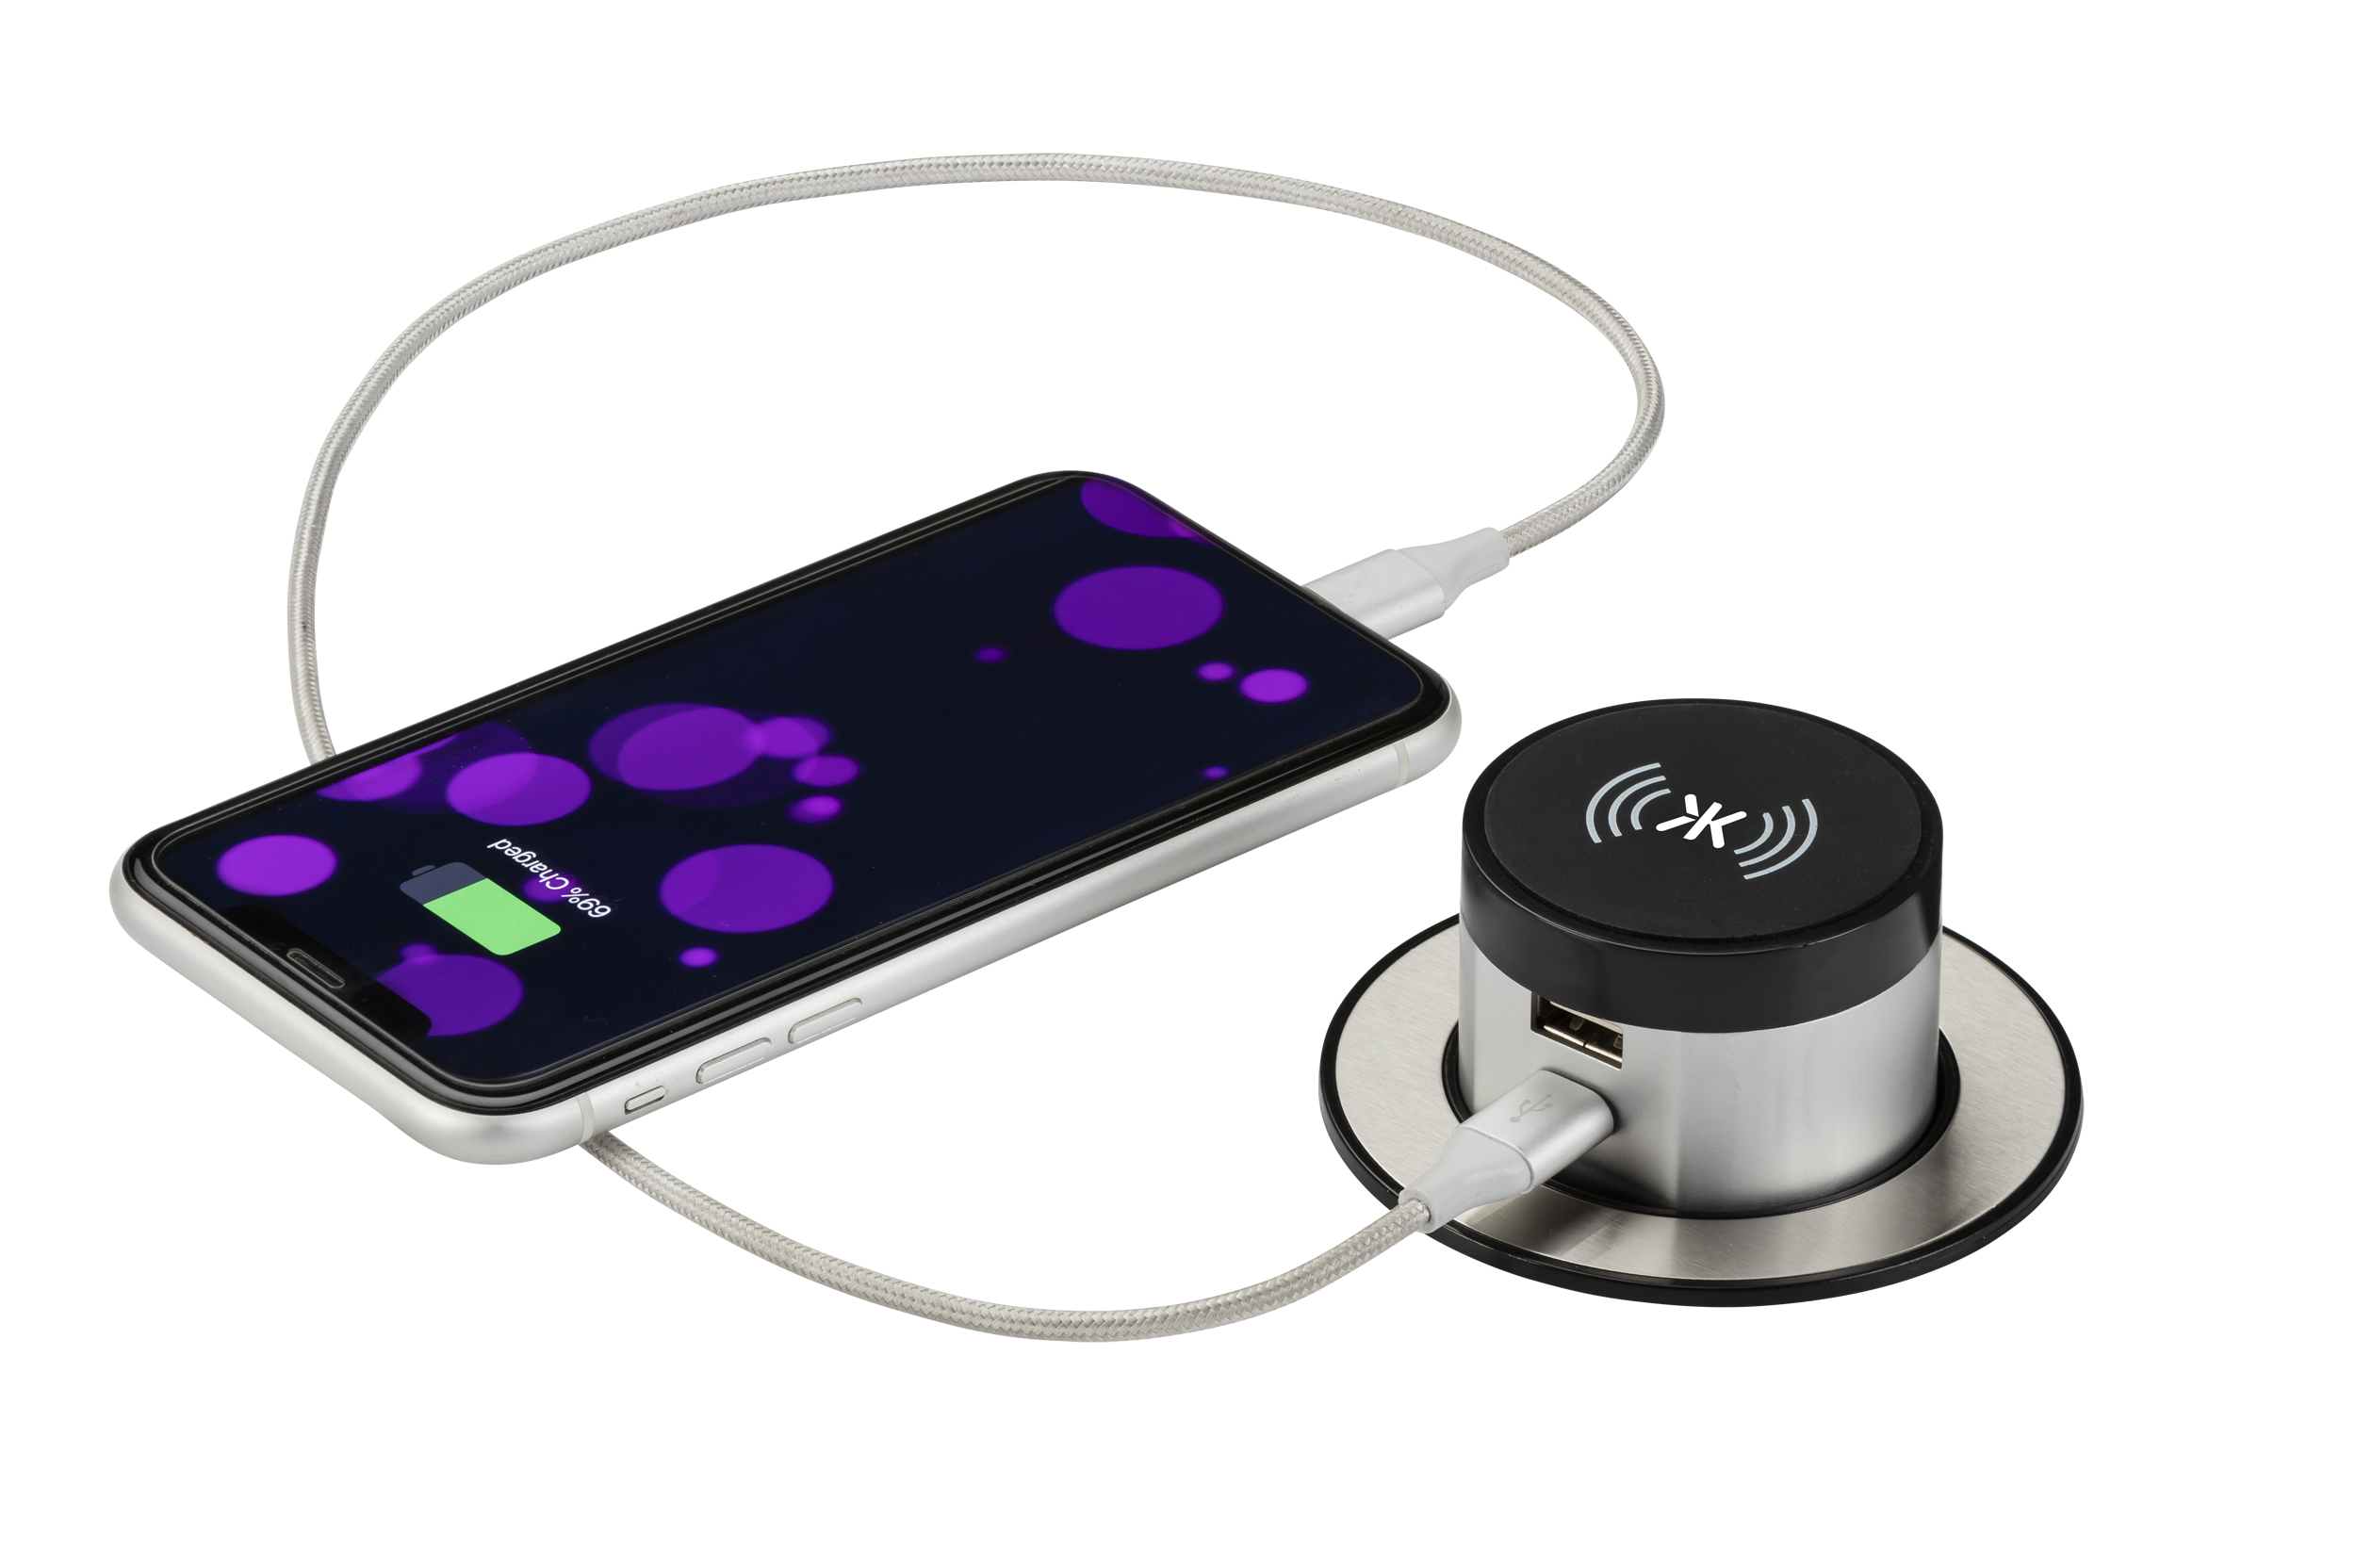 Wireless and USB charging with pop-up socket from Knightsbridge